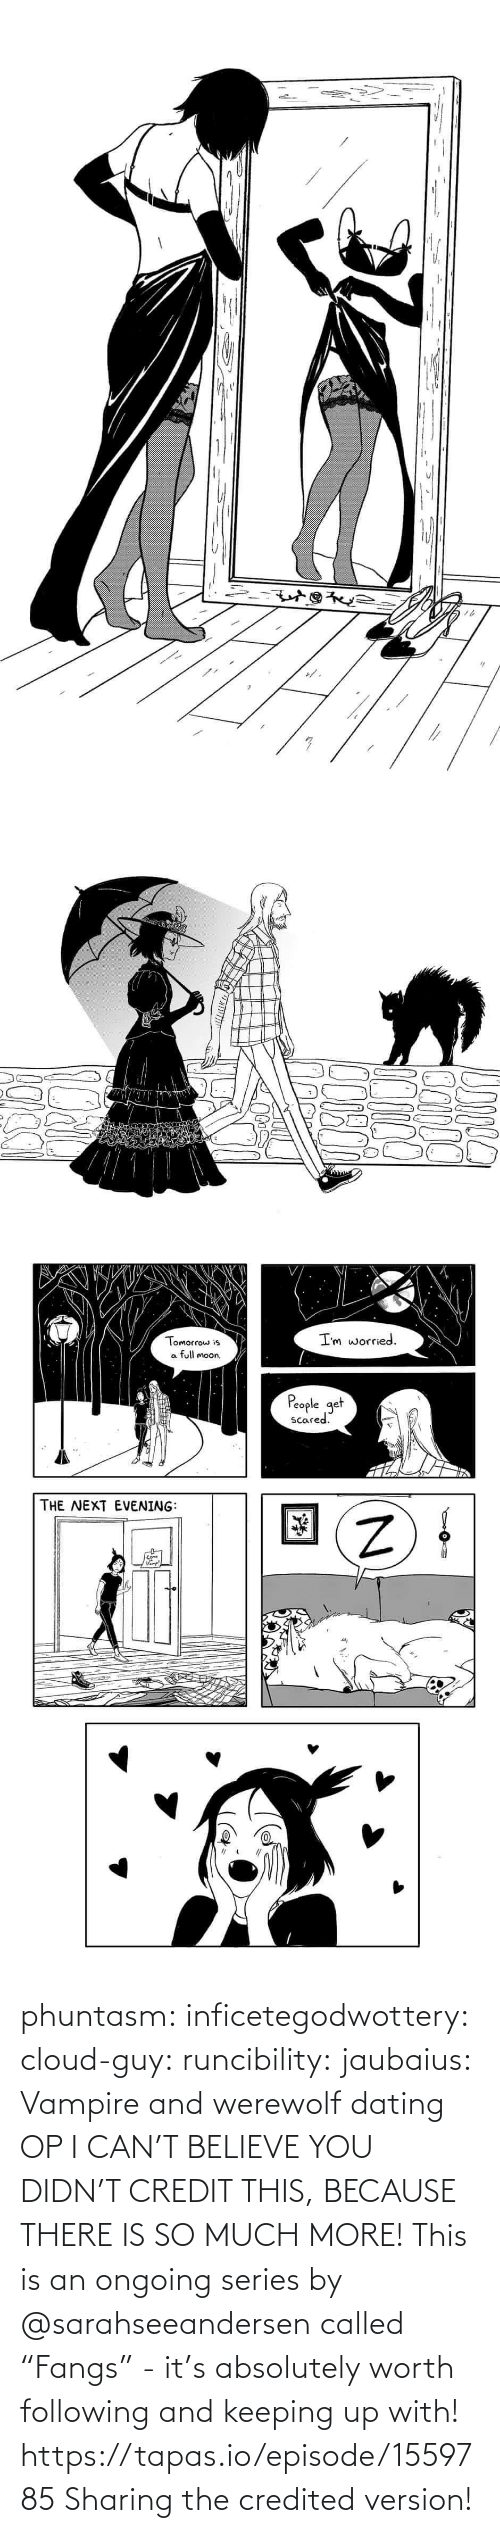 "believe: phuntasm: inficetegodwottery:  cloud-guy:   runcibility:  jaubaius:   Vampire and werewolf dating   OP I CAN'T BELIEVE YOU DIDN'T CREDIT THIS, BECAUSE THERE IS SO MUCH MORE! This is an ongoing series by @sarahseeandersen called ""Fangs"" - it's absolutely worth following and keeping up with! https://tapas.io/episode/1559785    Sharing the credited version!"